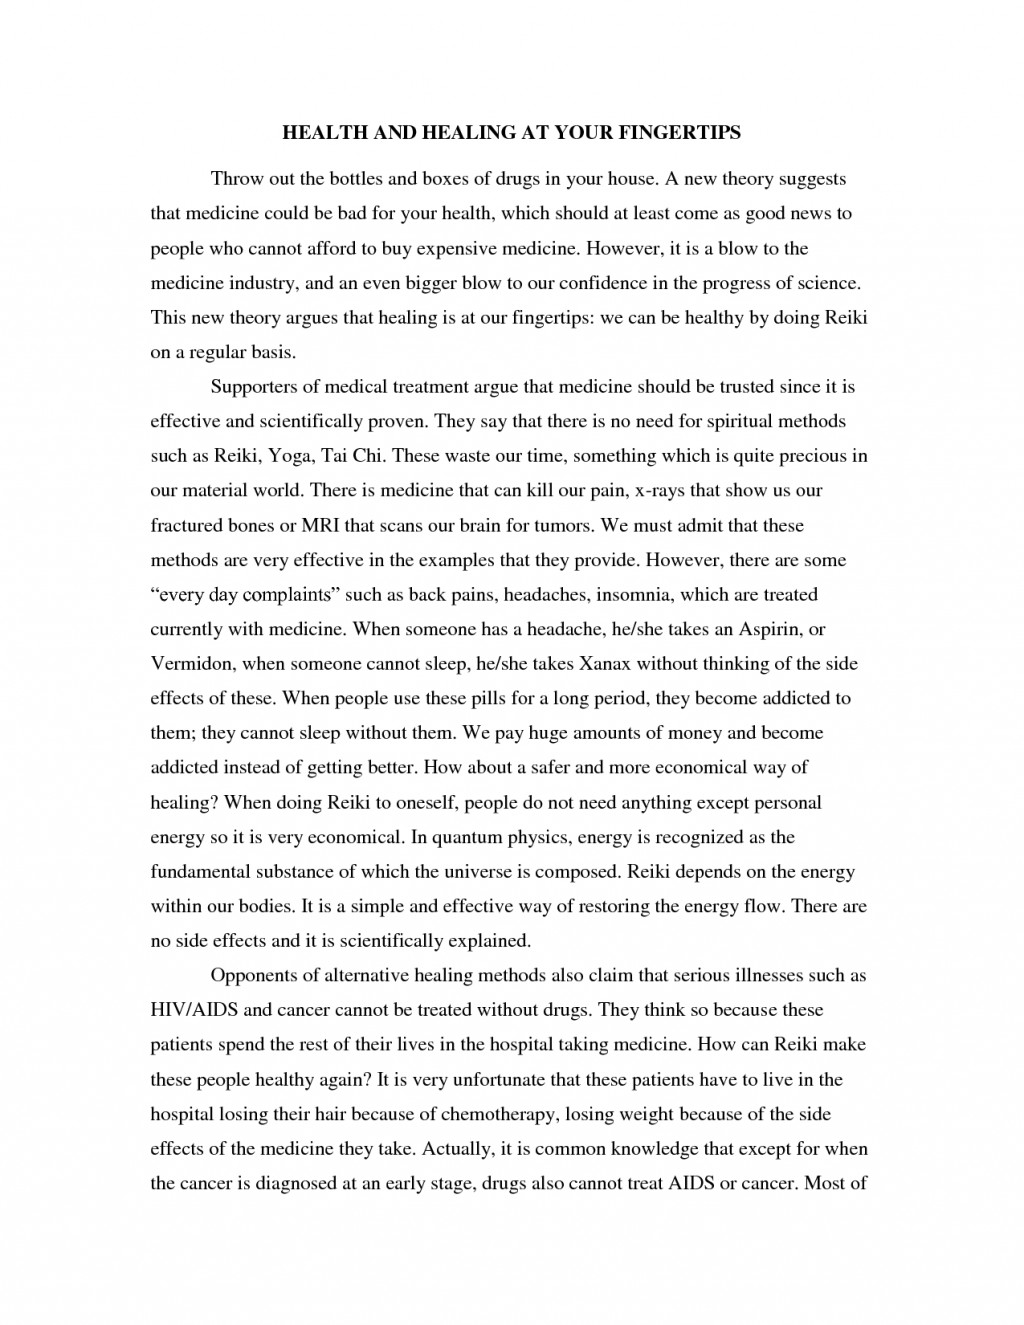 016 Mentor Argument Essay Page How To Write Good Argumentatives Astounding Argumentative Examples For High School Tagalog Topics Middle Students Format Large